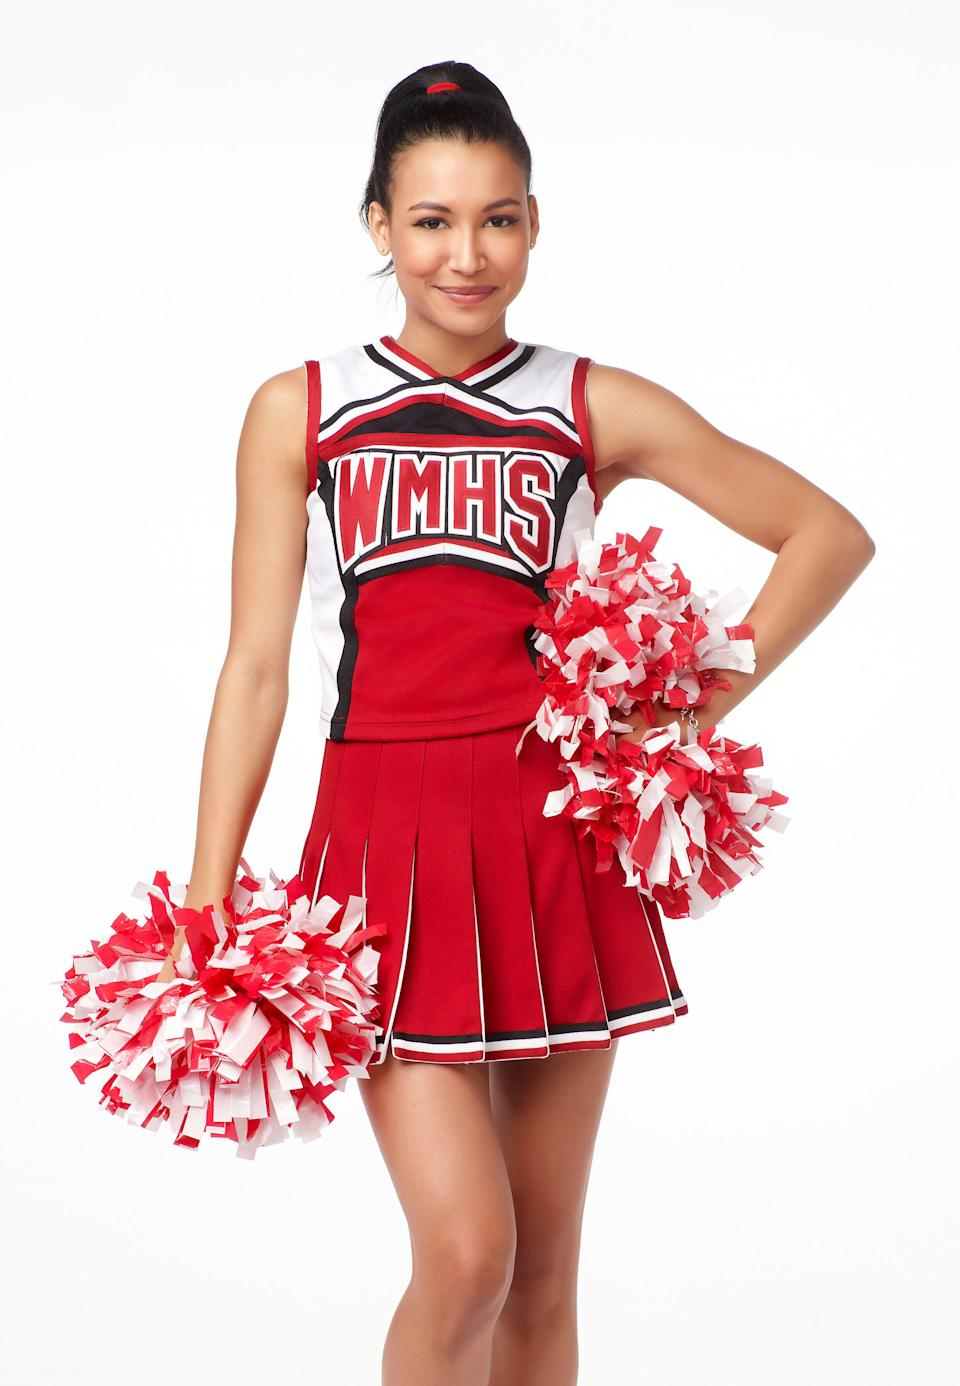 GLEE: Naya Rivera guest-stars as Santana in all-new episodes of GLEE premiering at a special time Tuesday, April 13 (9:28-10:30 PM ET/PT) on FOX. (Photo by FOX Image Collection via Getty Images)